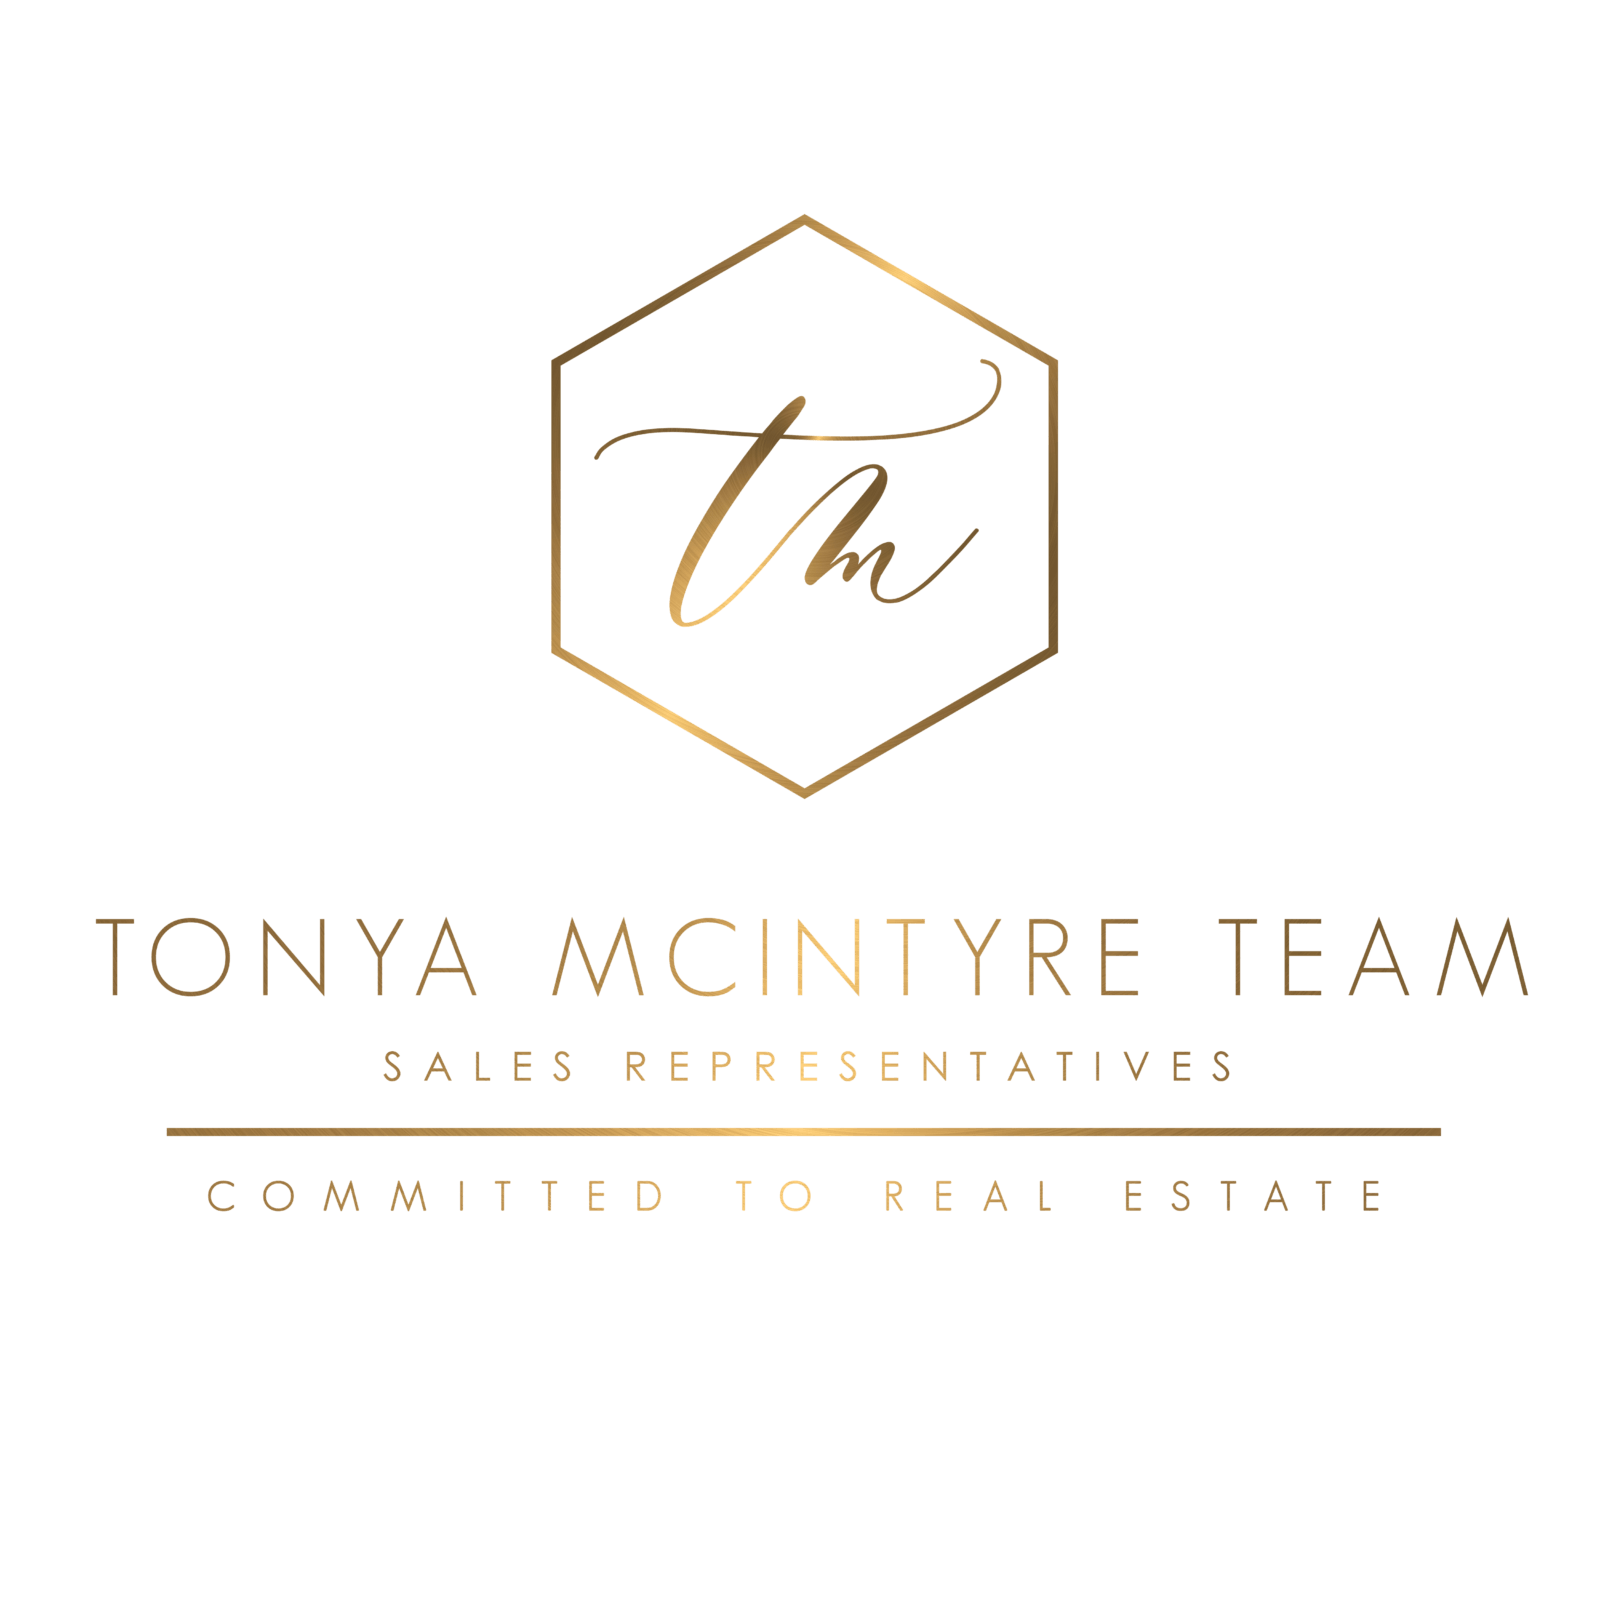 Tonya McIntyre Team   Committed to Real Estate